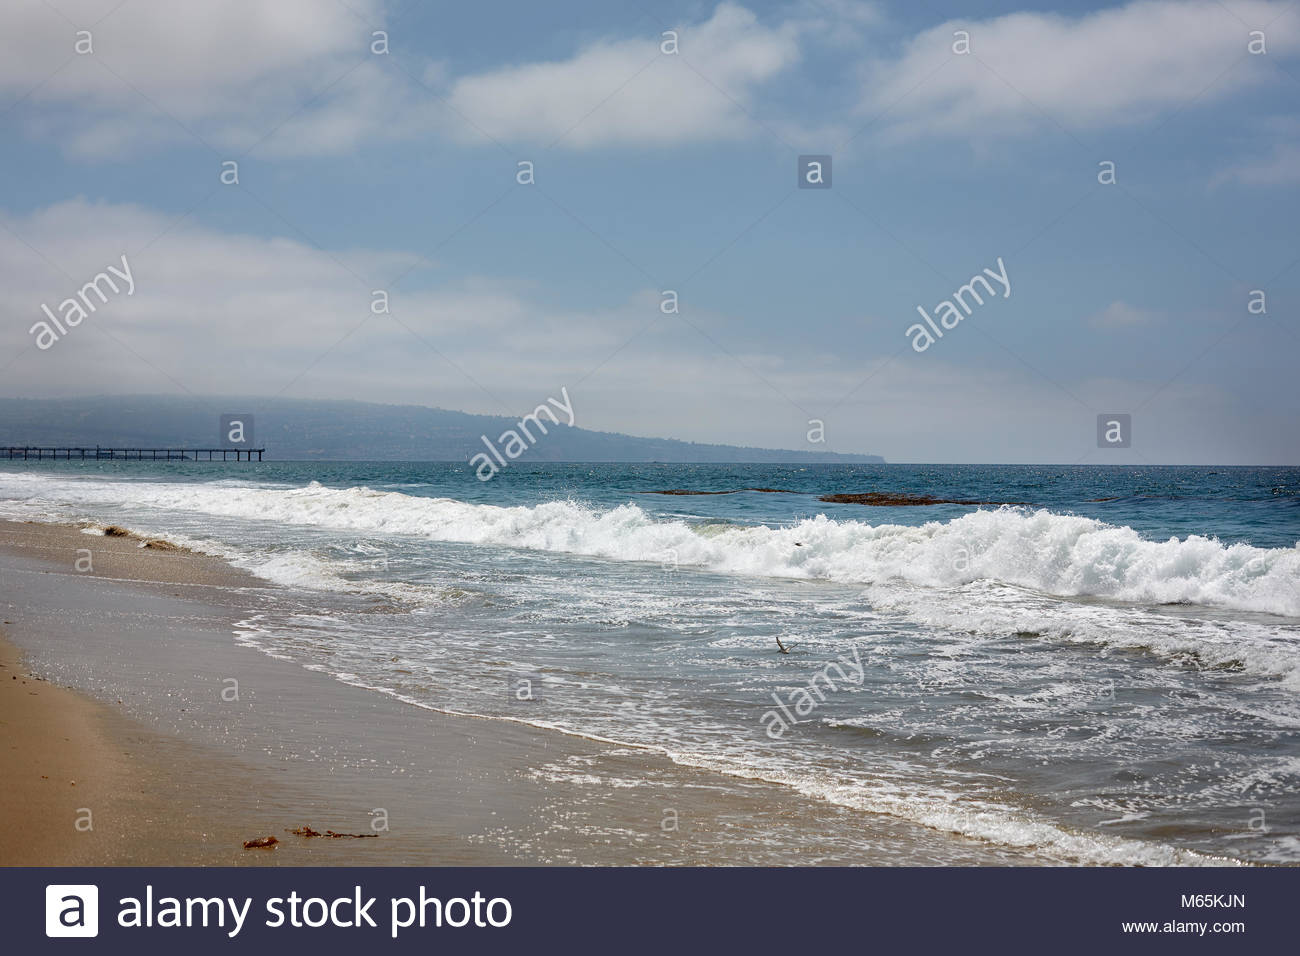 Overcast, Blue Sky and water waves on the sandy Coast of Pacific Ocean, Manhattan Beach Southern California - Stock Image